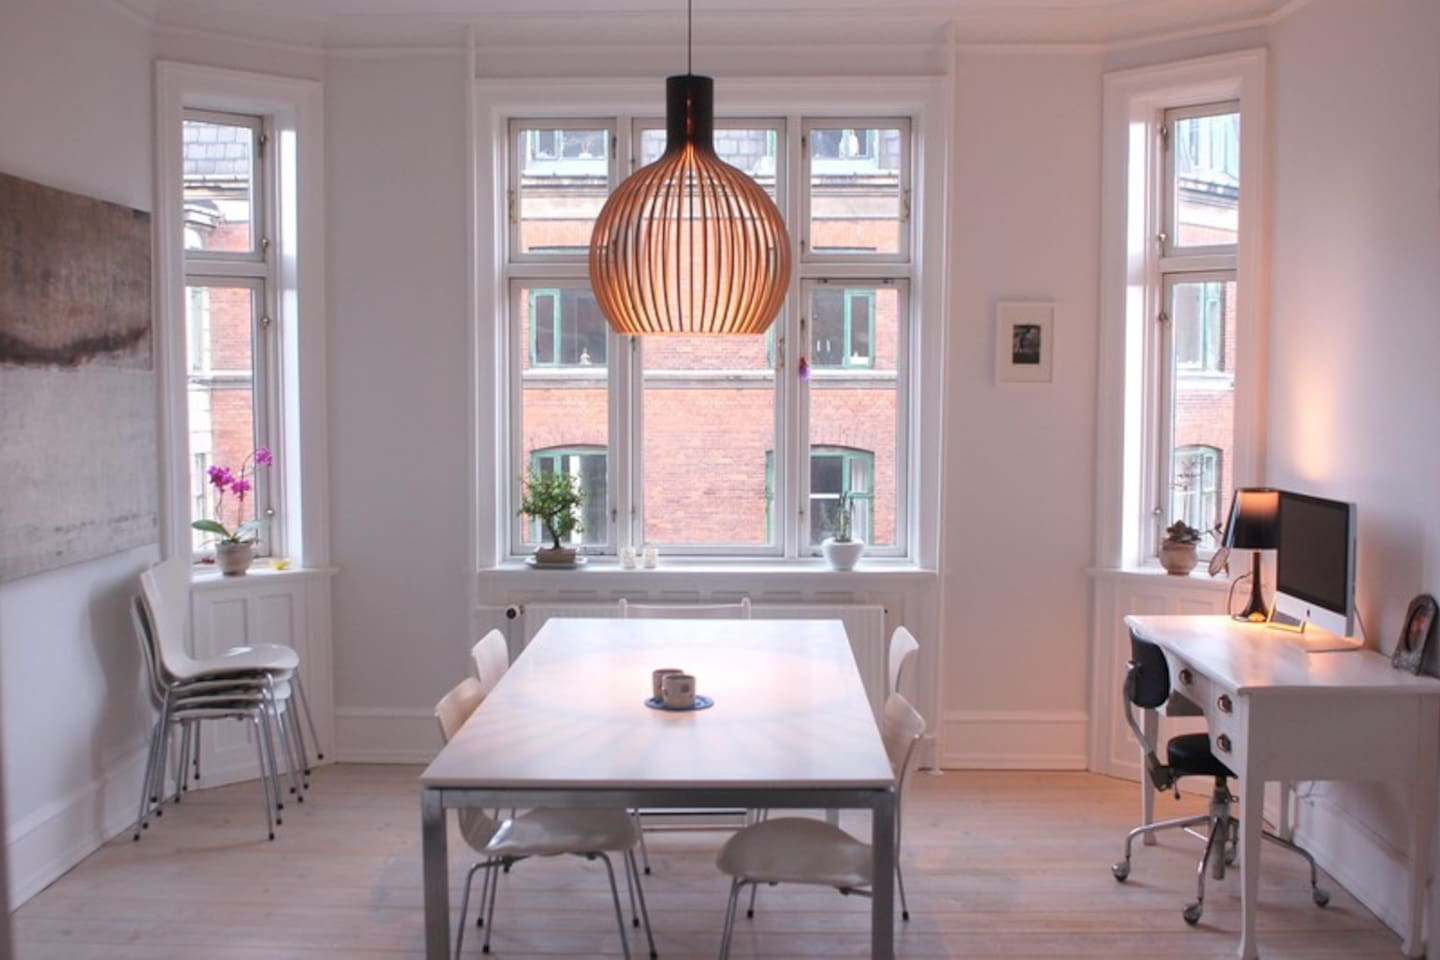 Dinningroom with nordic design and art